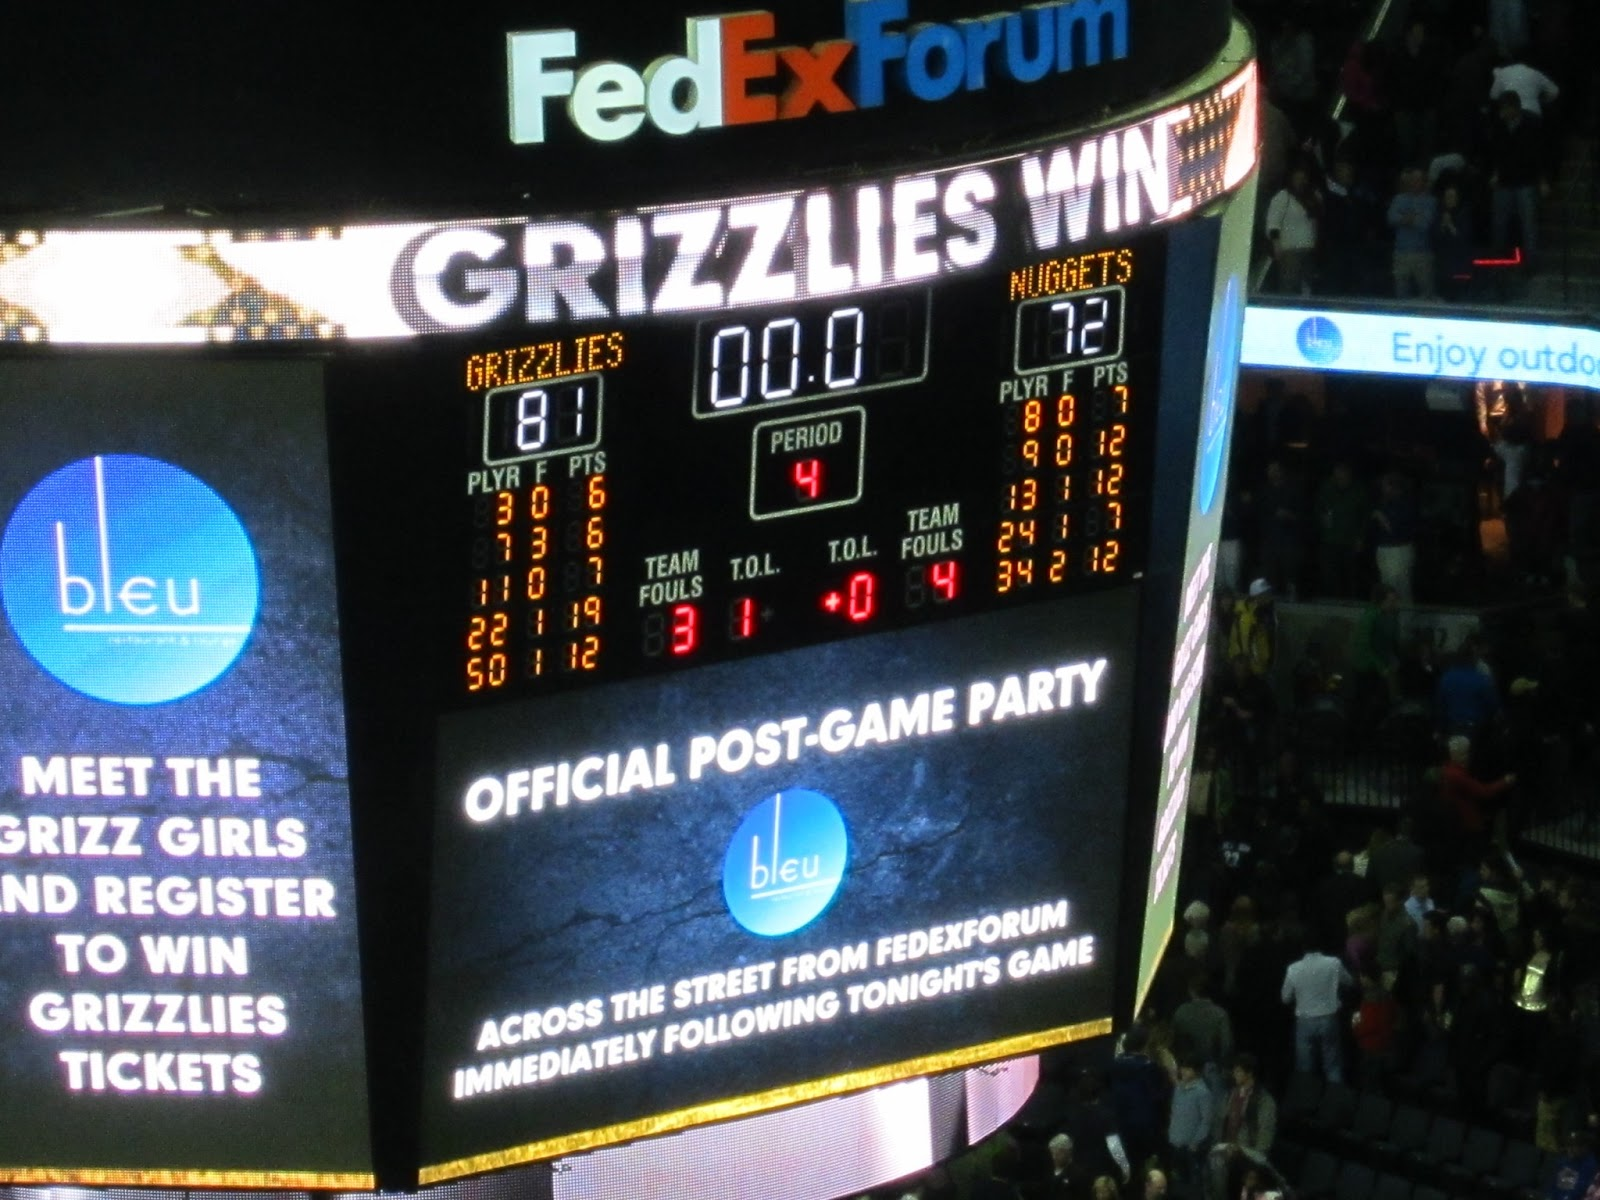 Dustinations: Memphis Part 2 = Grizzlies NBA game